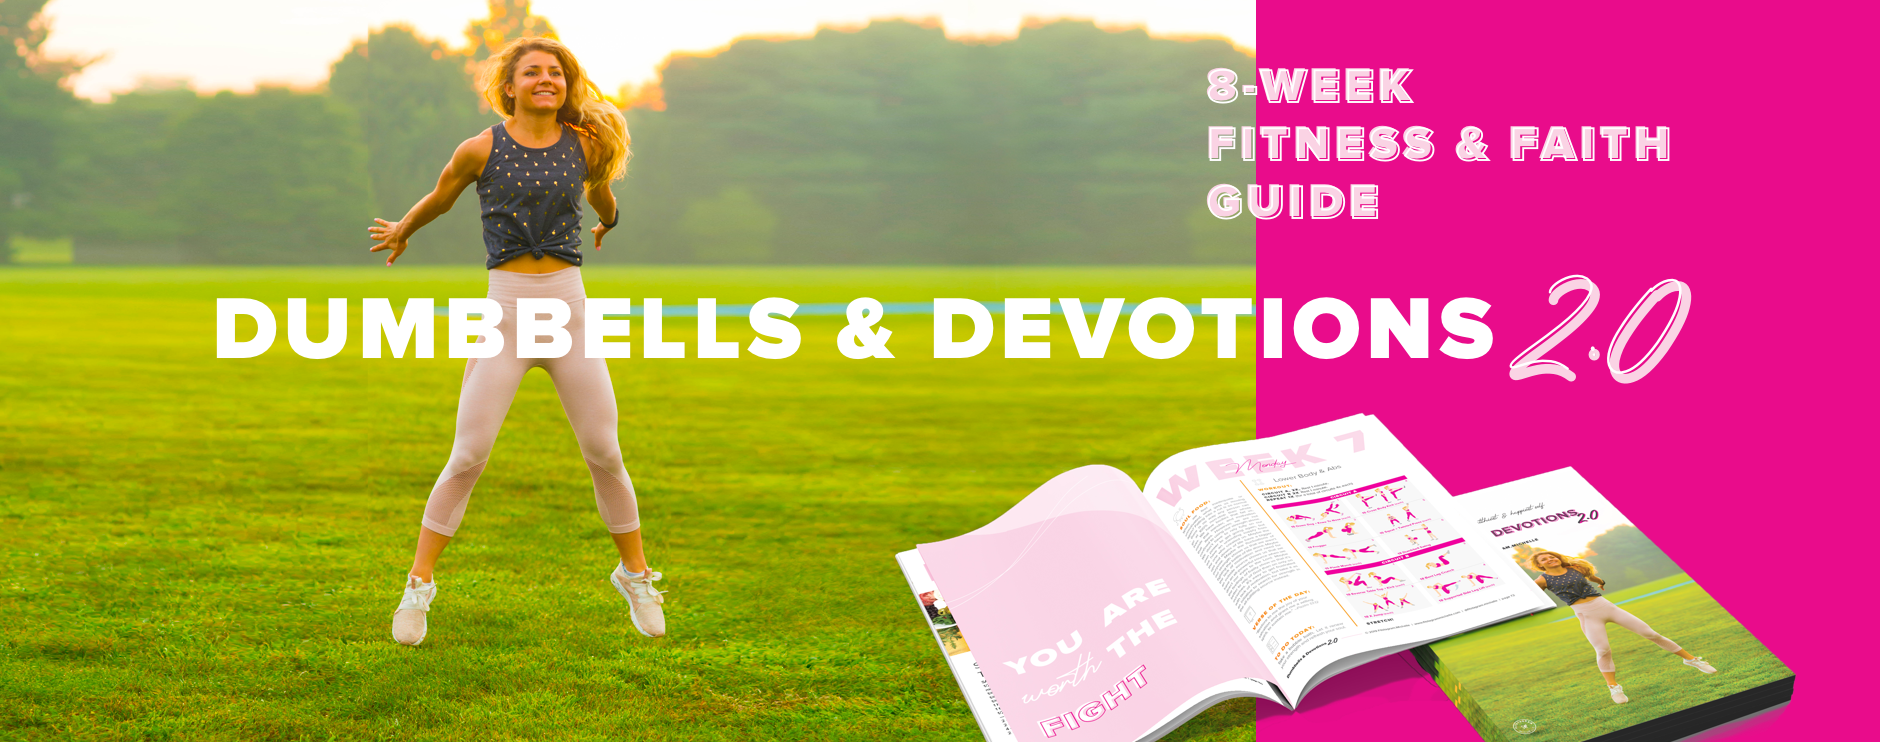 Dumbbells & Devotions 2.0